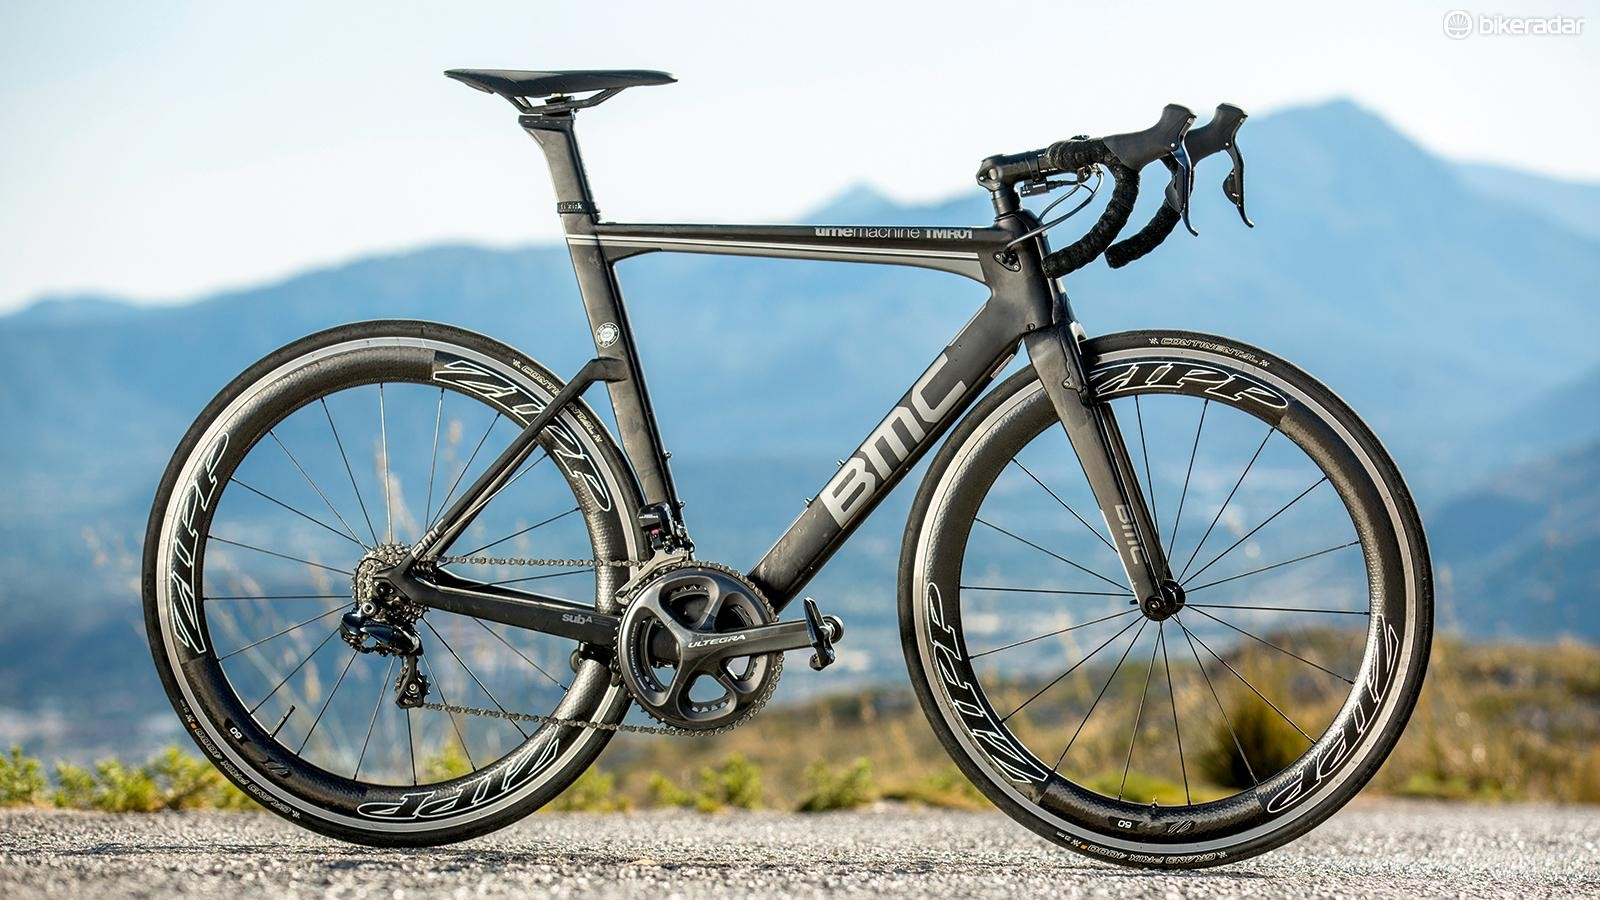 BMC's Aero TMR01 Ultegra Di2 is an uncompromising ride, but a massively rewarding one